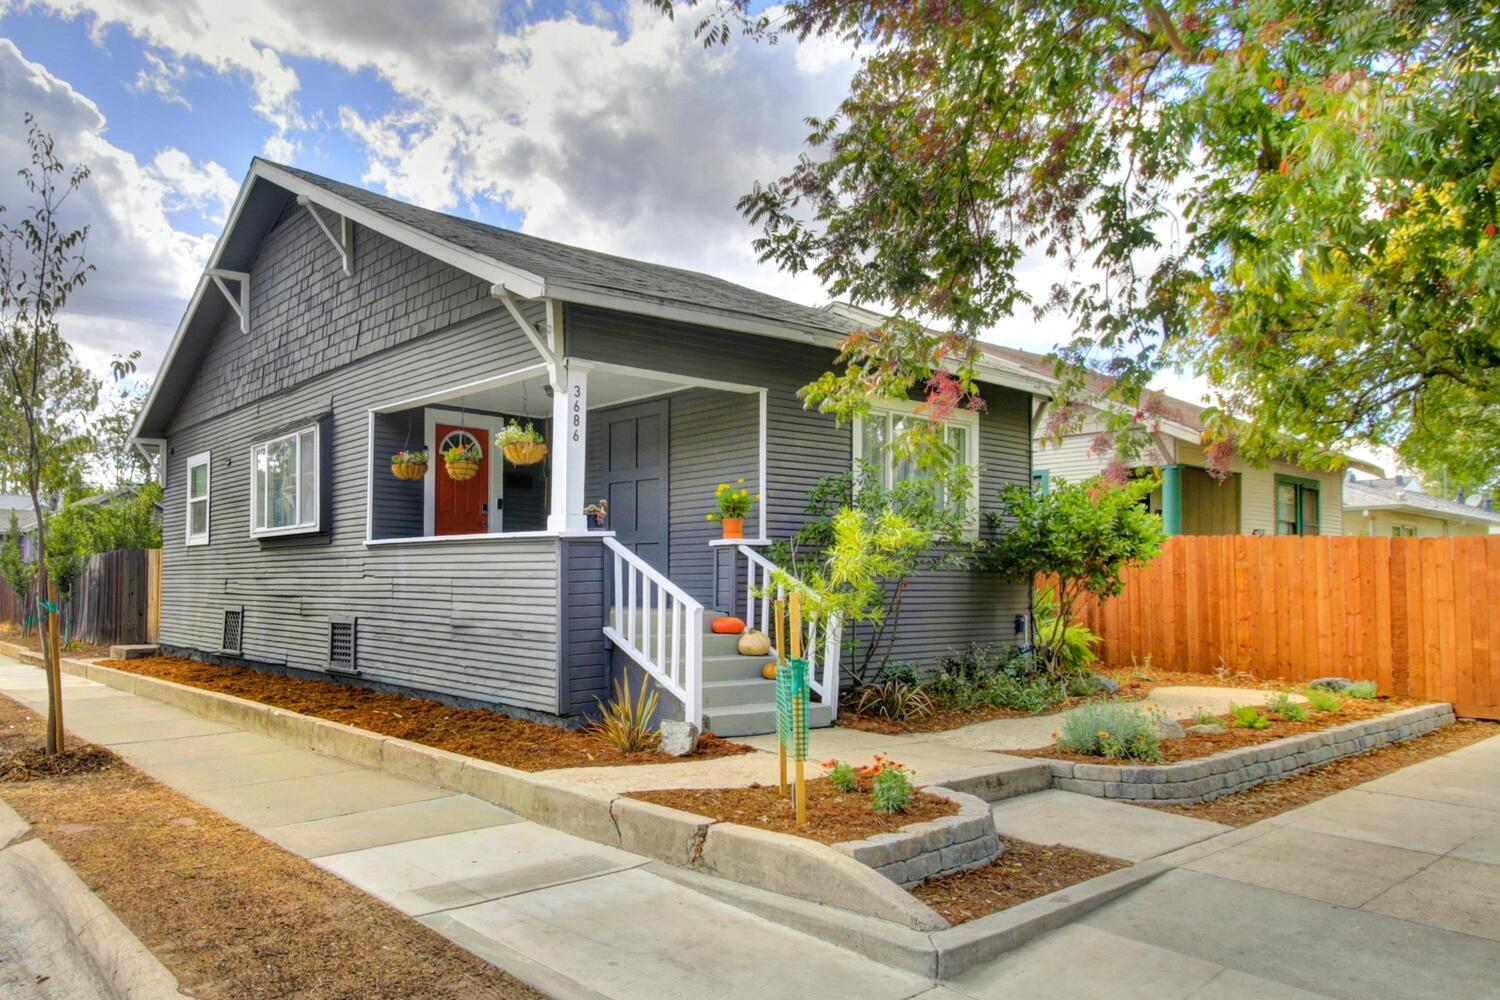 Adorable 2 bed 1 bath Oak Park bungalow with all the charm located right around the corner from the